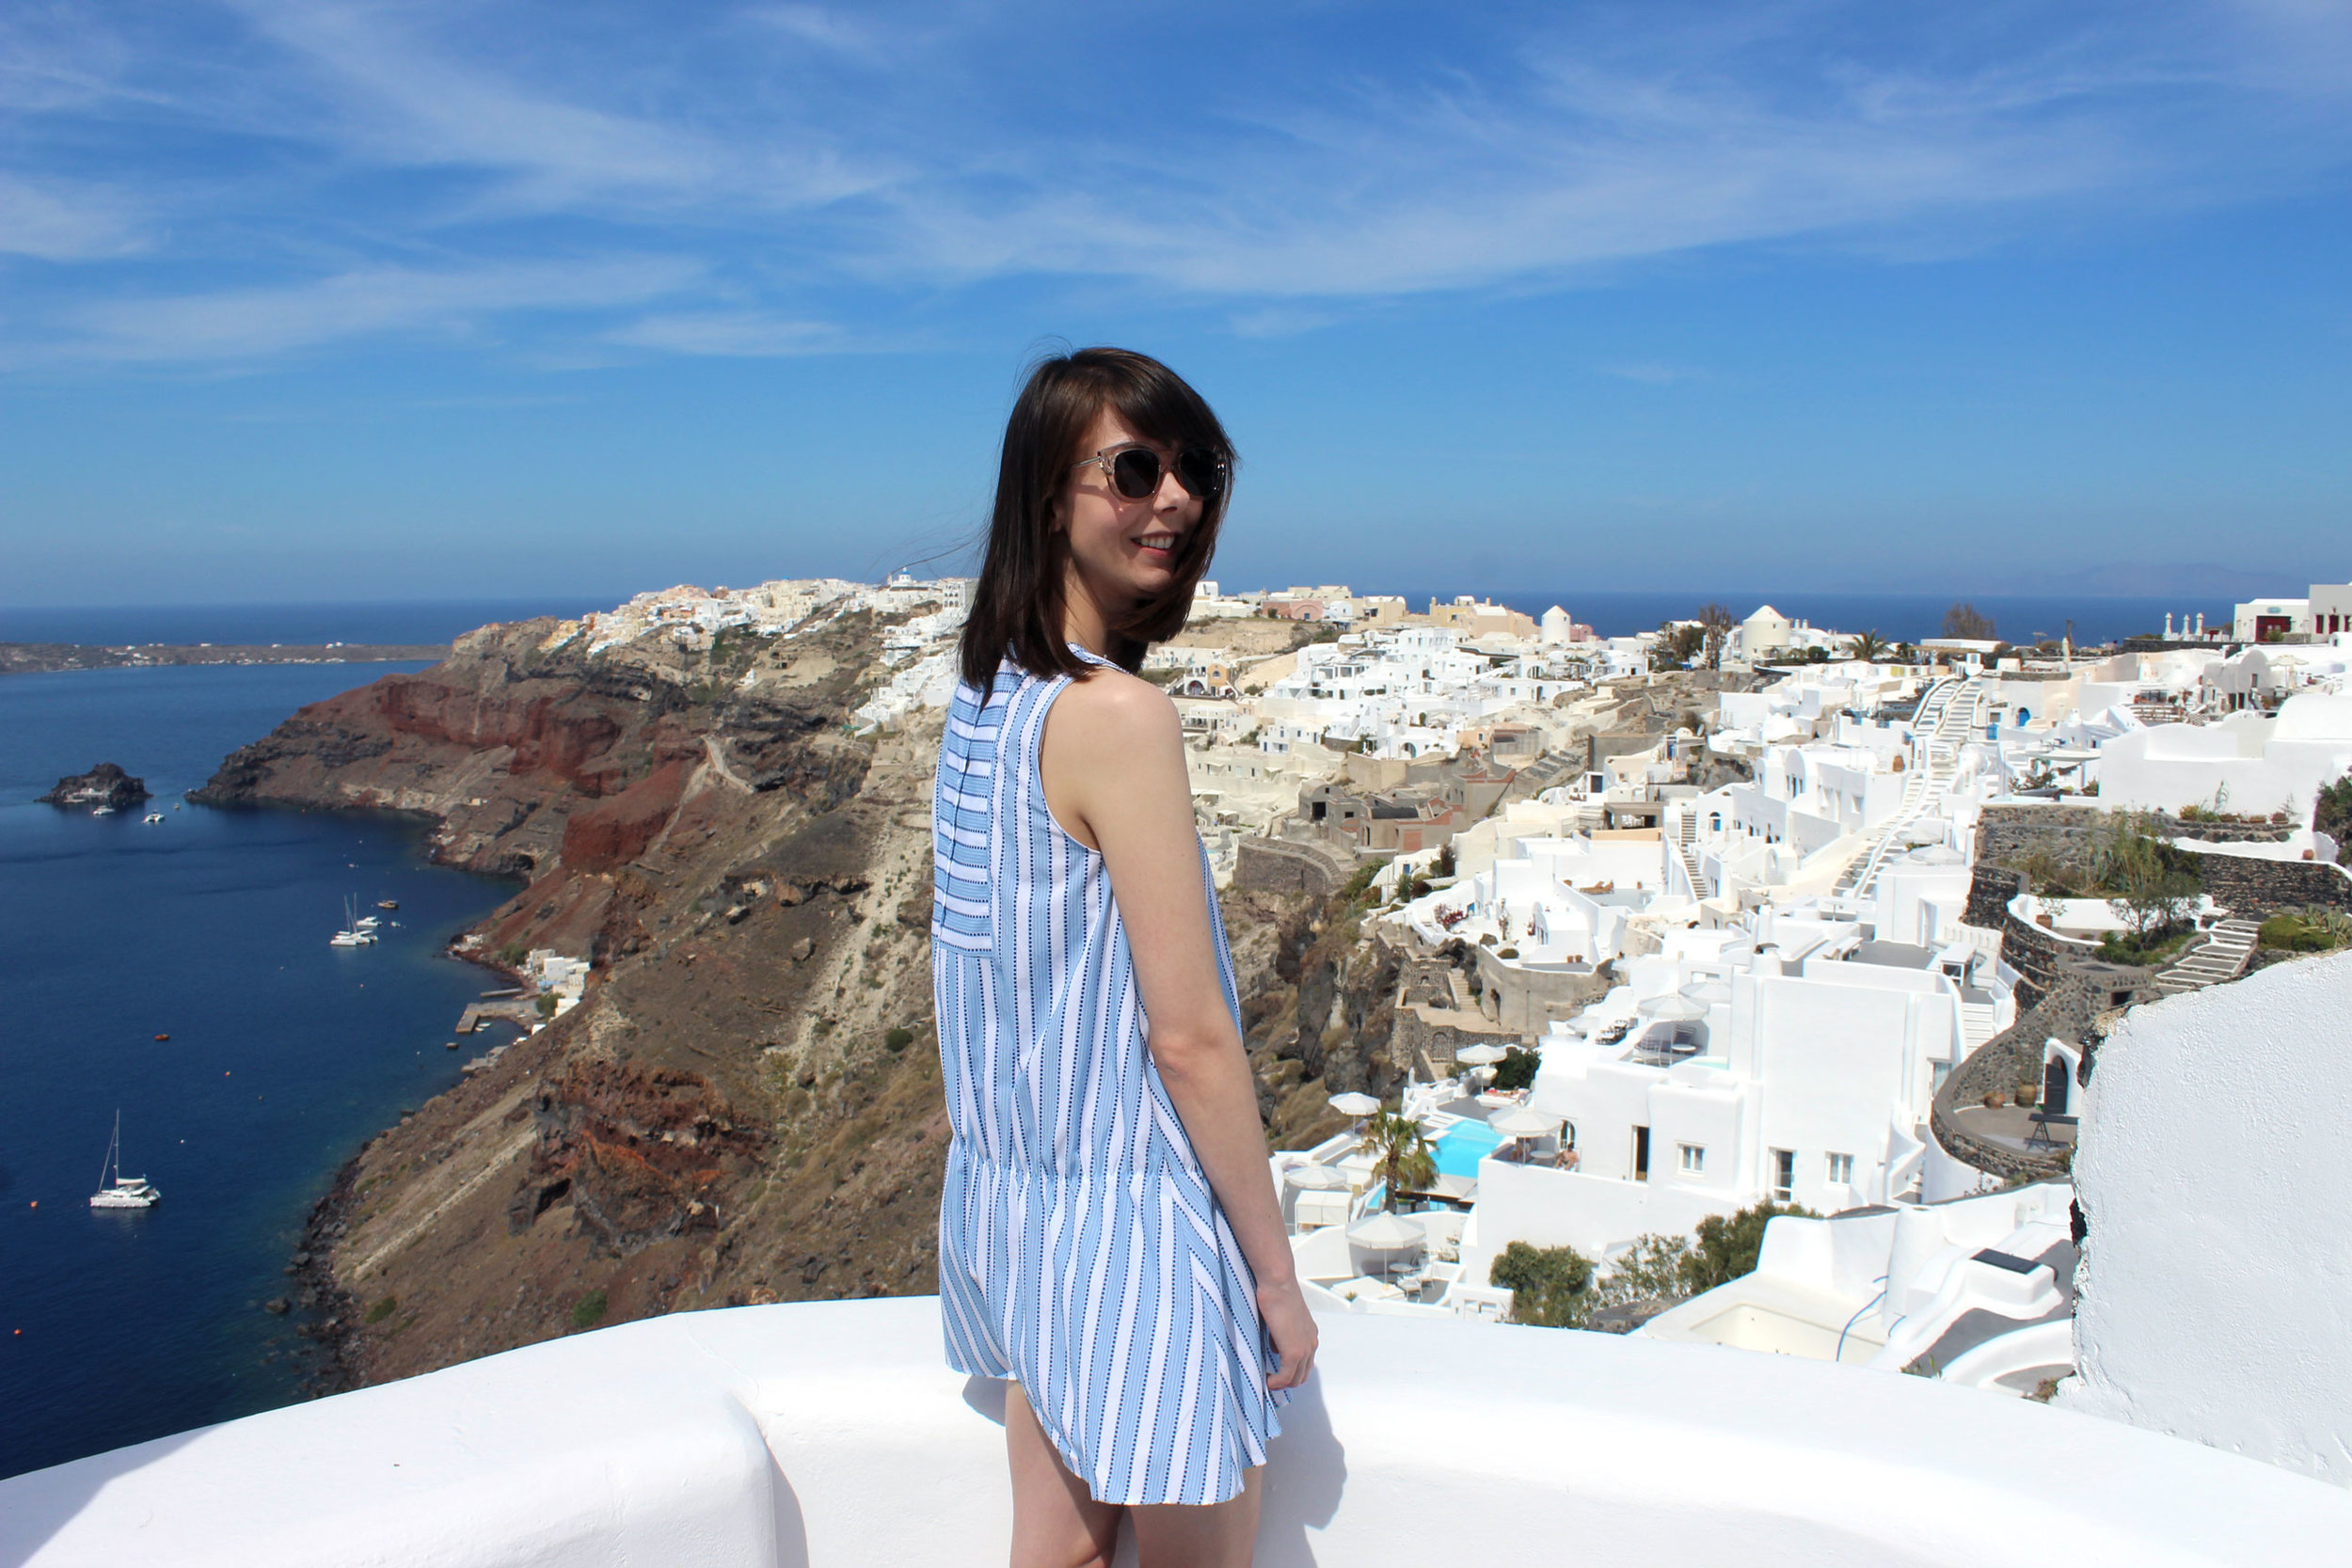 Standing on the balcony of our room at Ikies Hotel in Santorini, Greece.